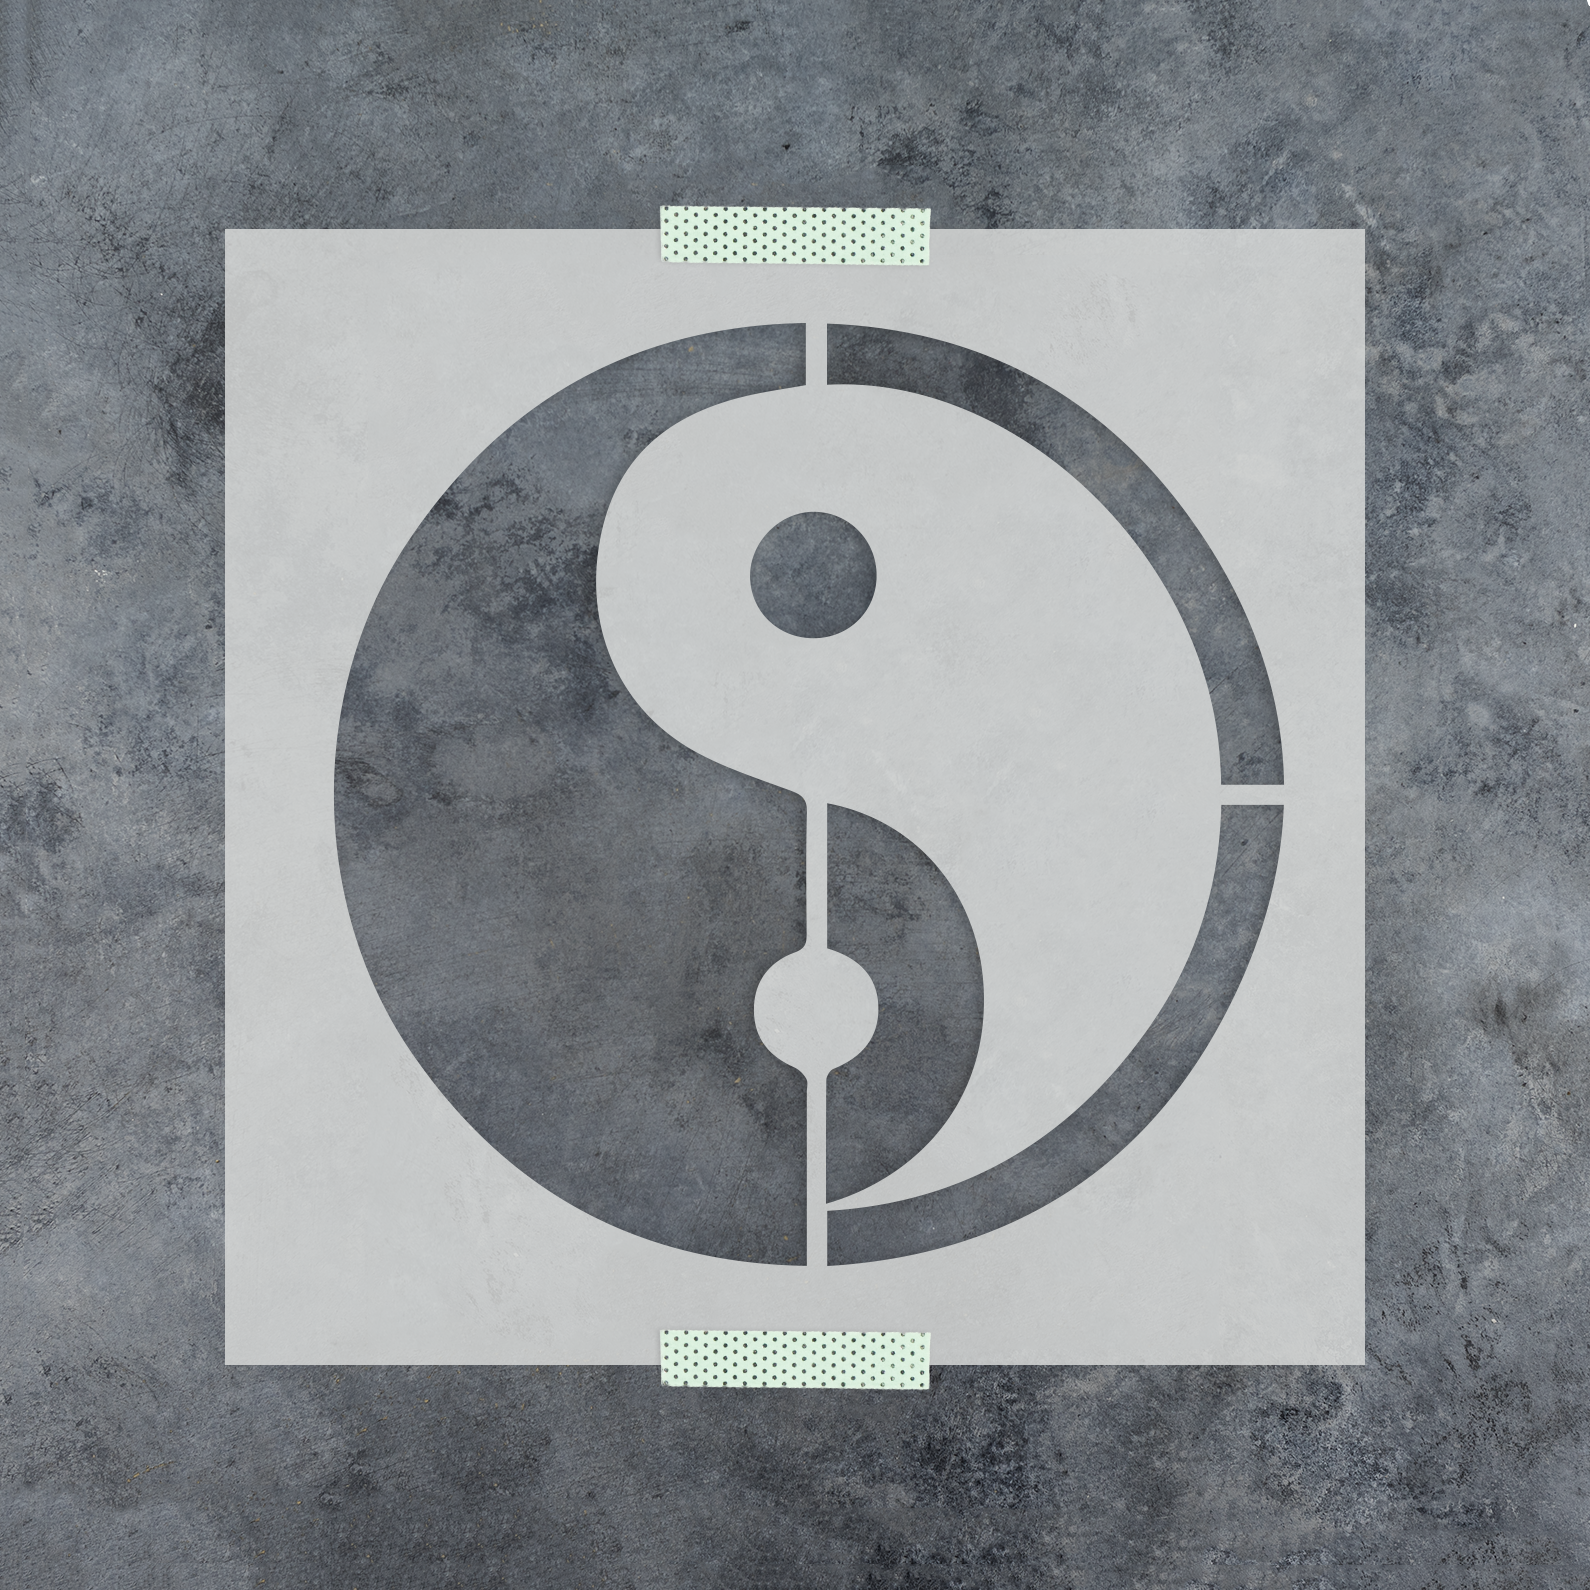 Yin Yang Stencil - Reusable Stencils of a Yin Yang in Small & Large Sizes